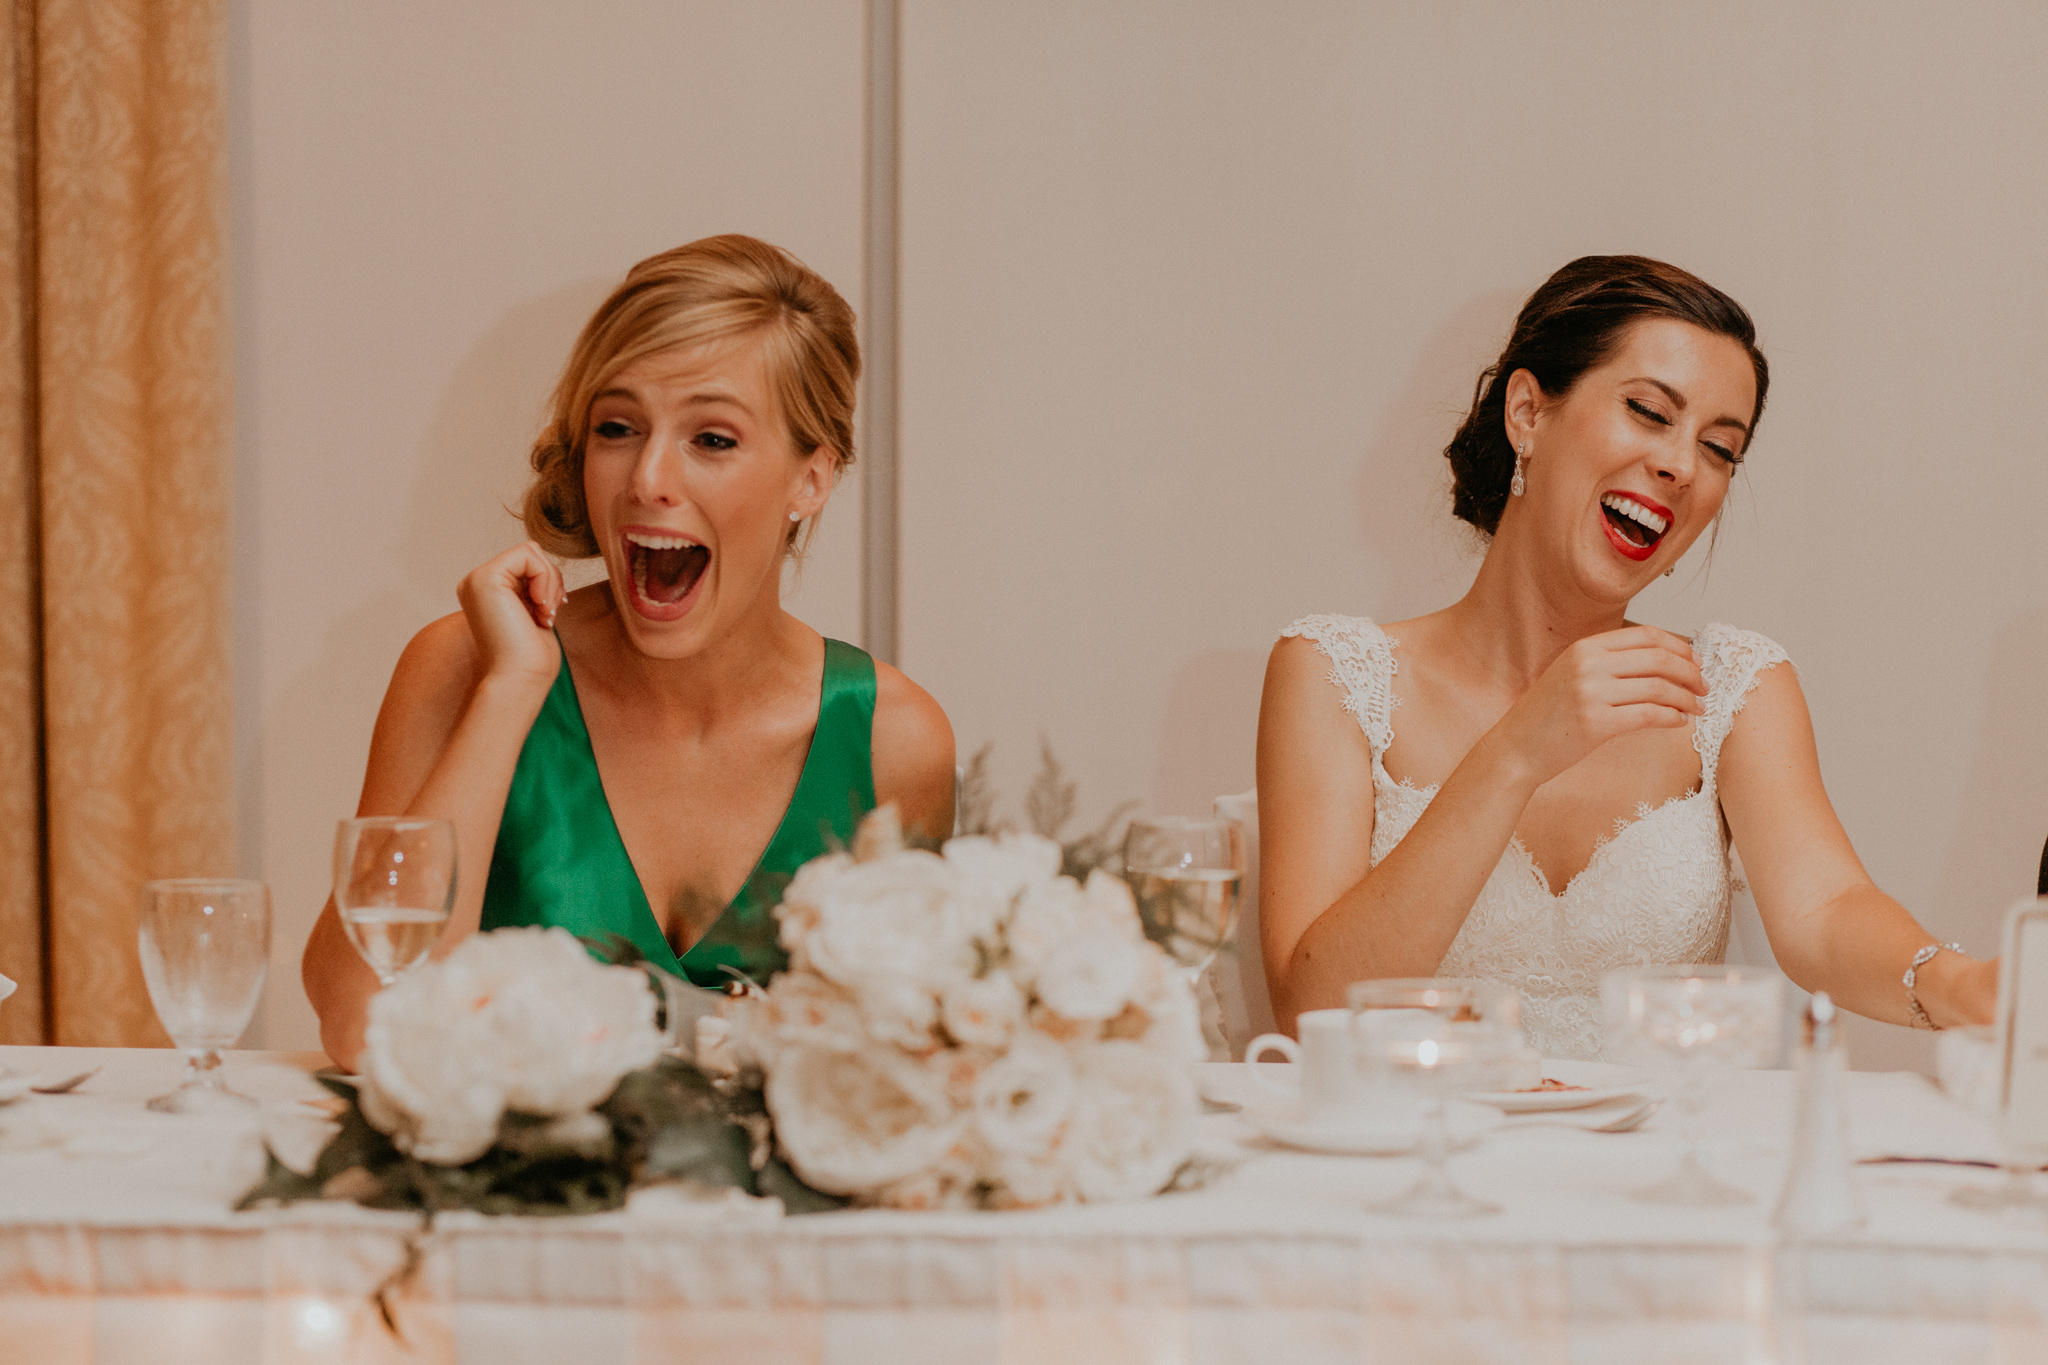 Candid of bride and bridesmaid laughing during wedding reception speeches